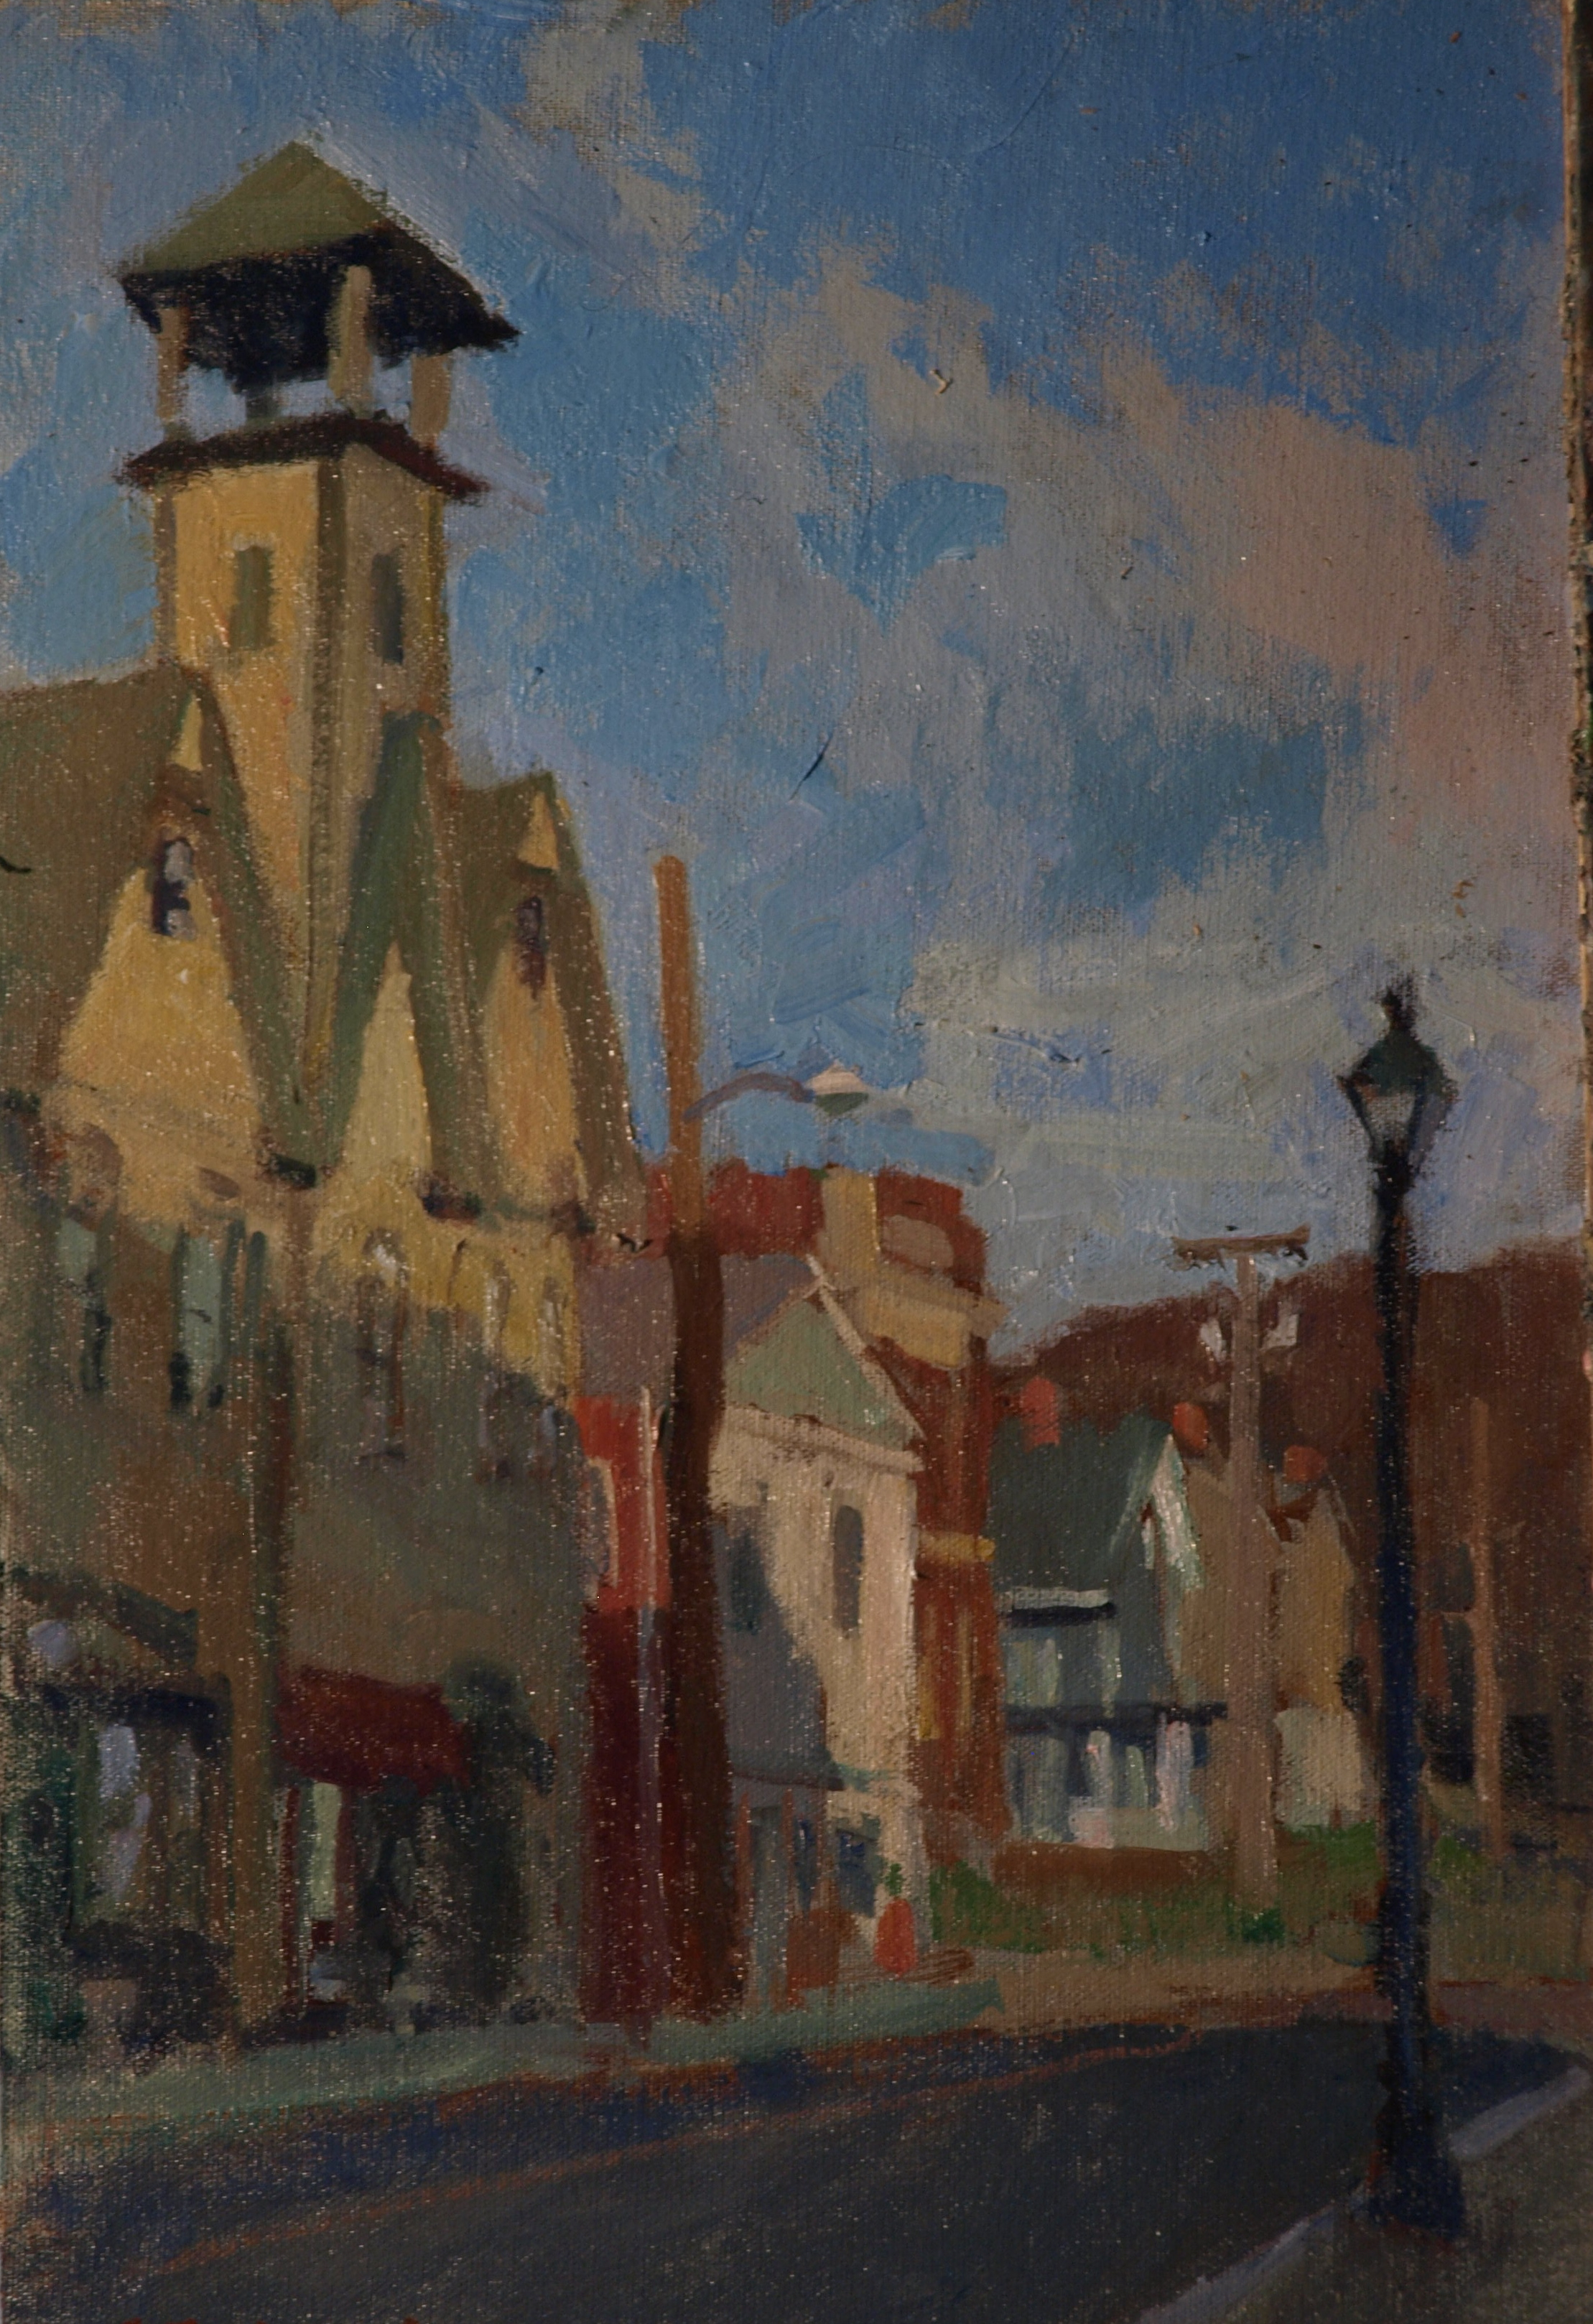 Firehouse - New Milford, Oil on Canvas on Panel, 18 x 12 Inches, by Susan Grisell, $275